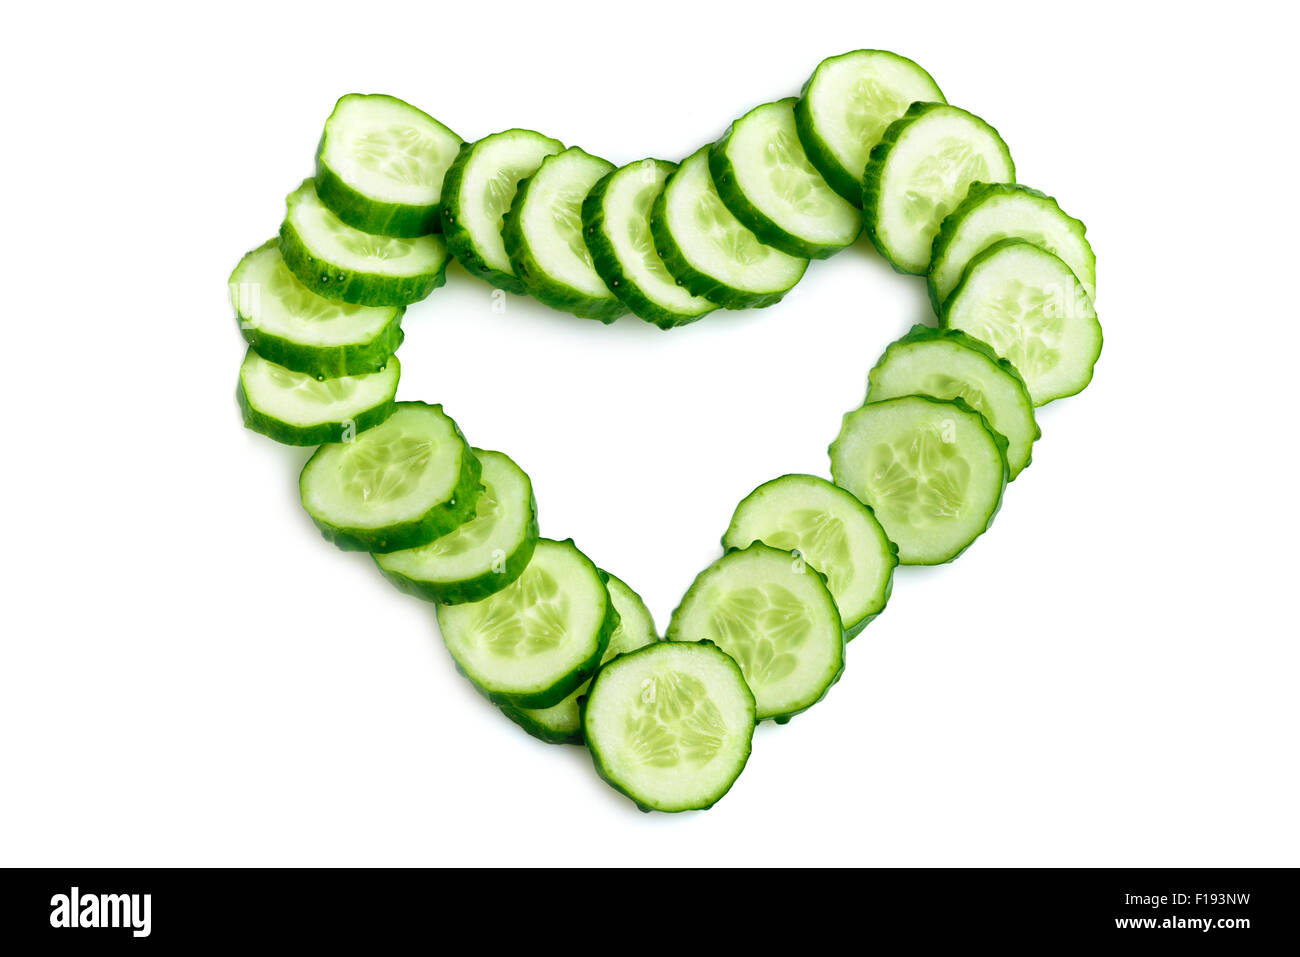 Cucumber slices arranged as heart shape isolated over white background - Stock Image